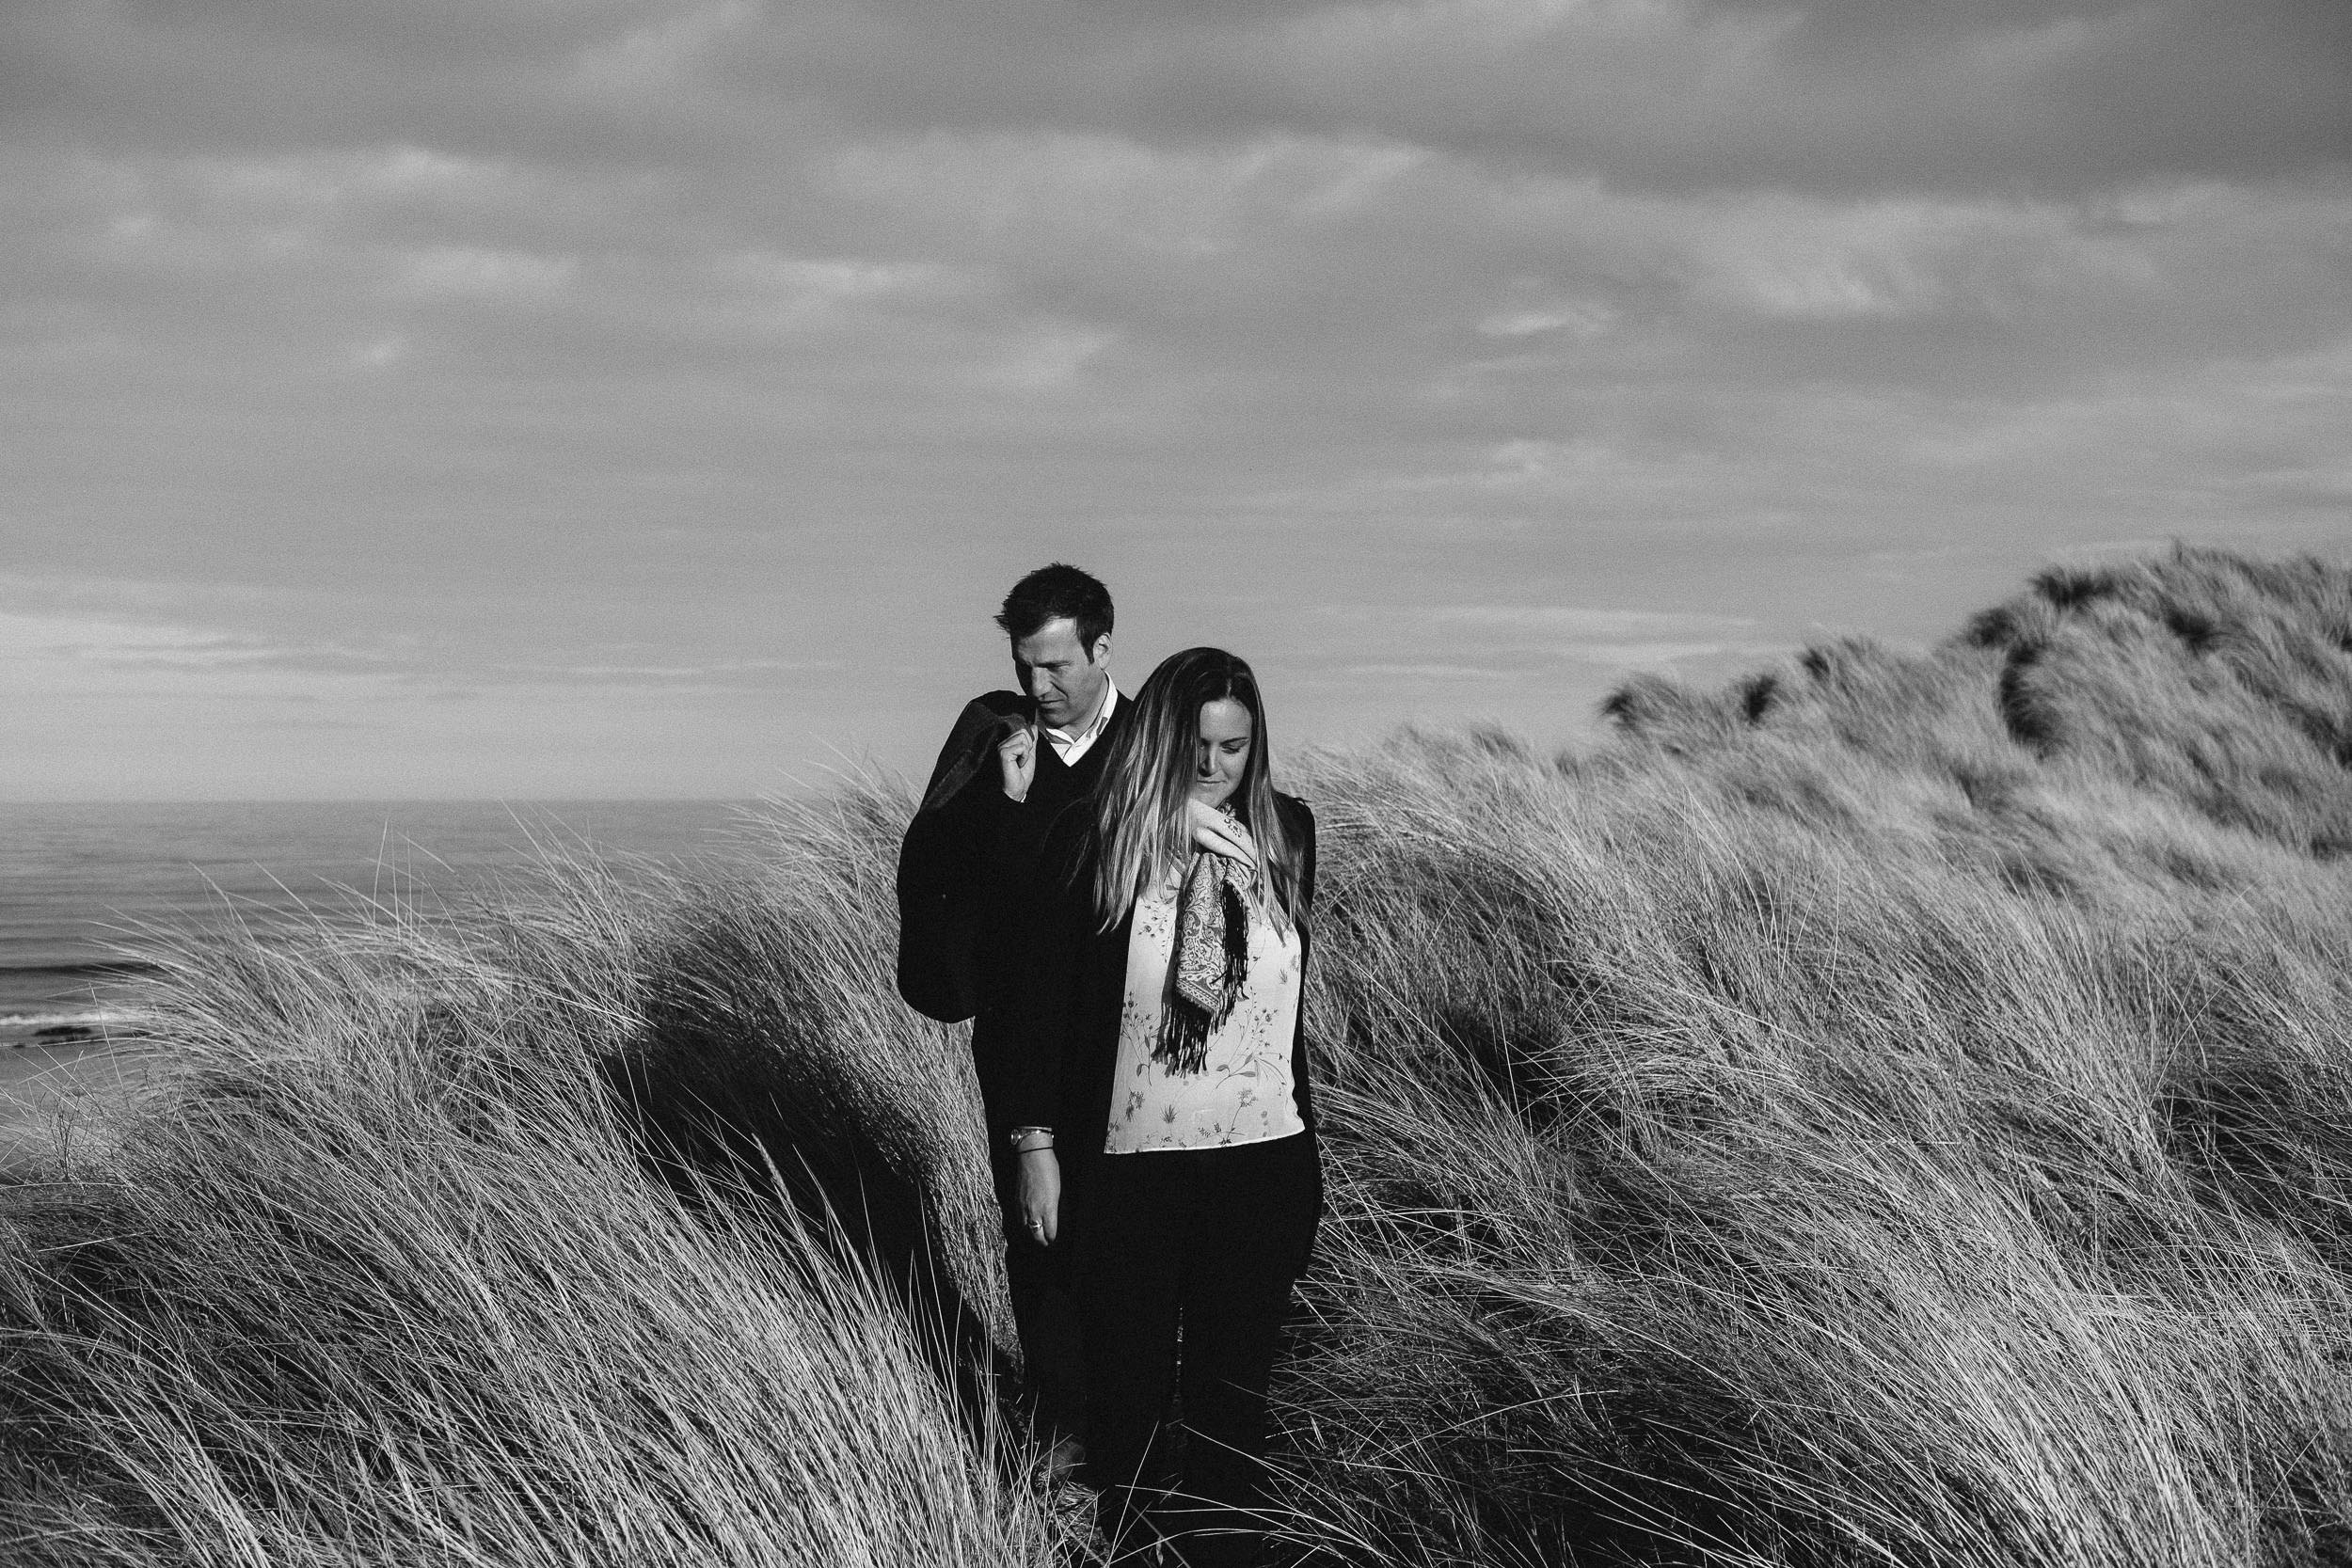 A black and white photo of an engaged couple walking through long grass on sand dunes